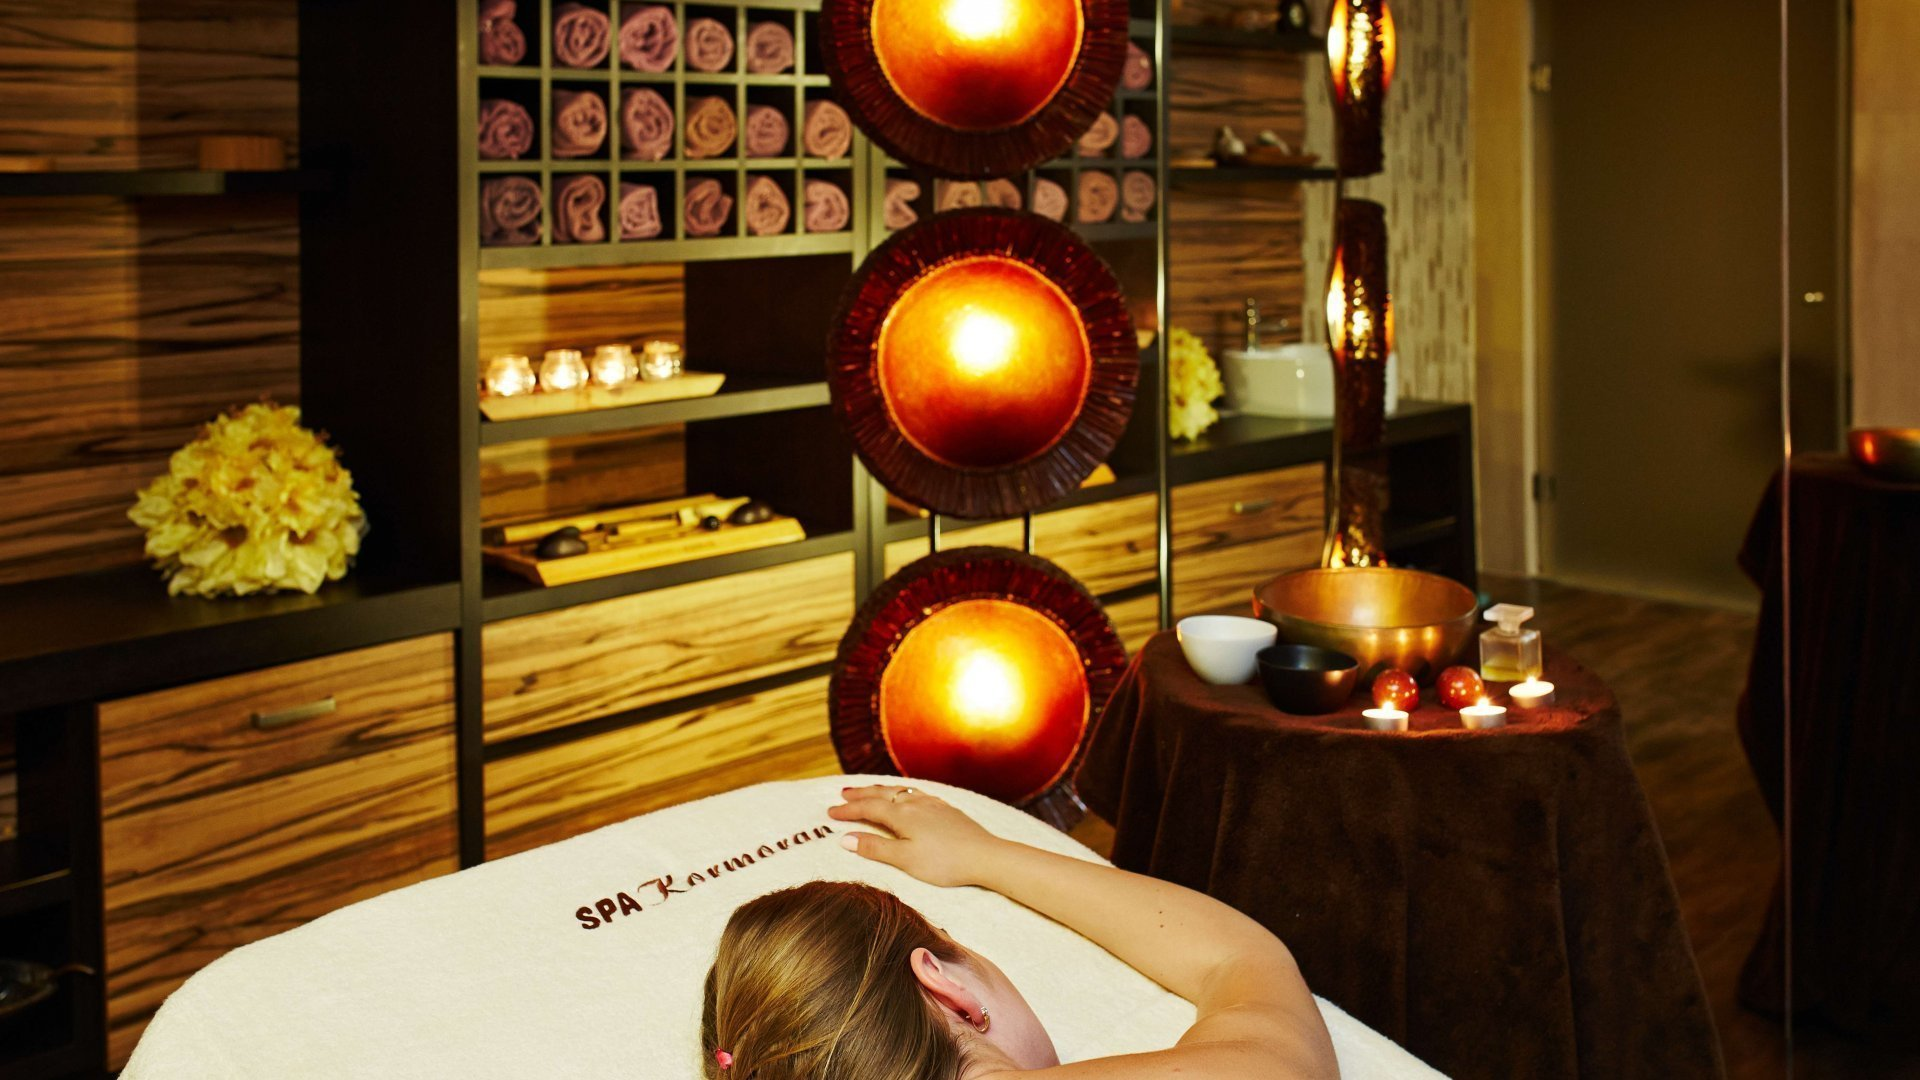 SPA weekend - you choose your treatments